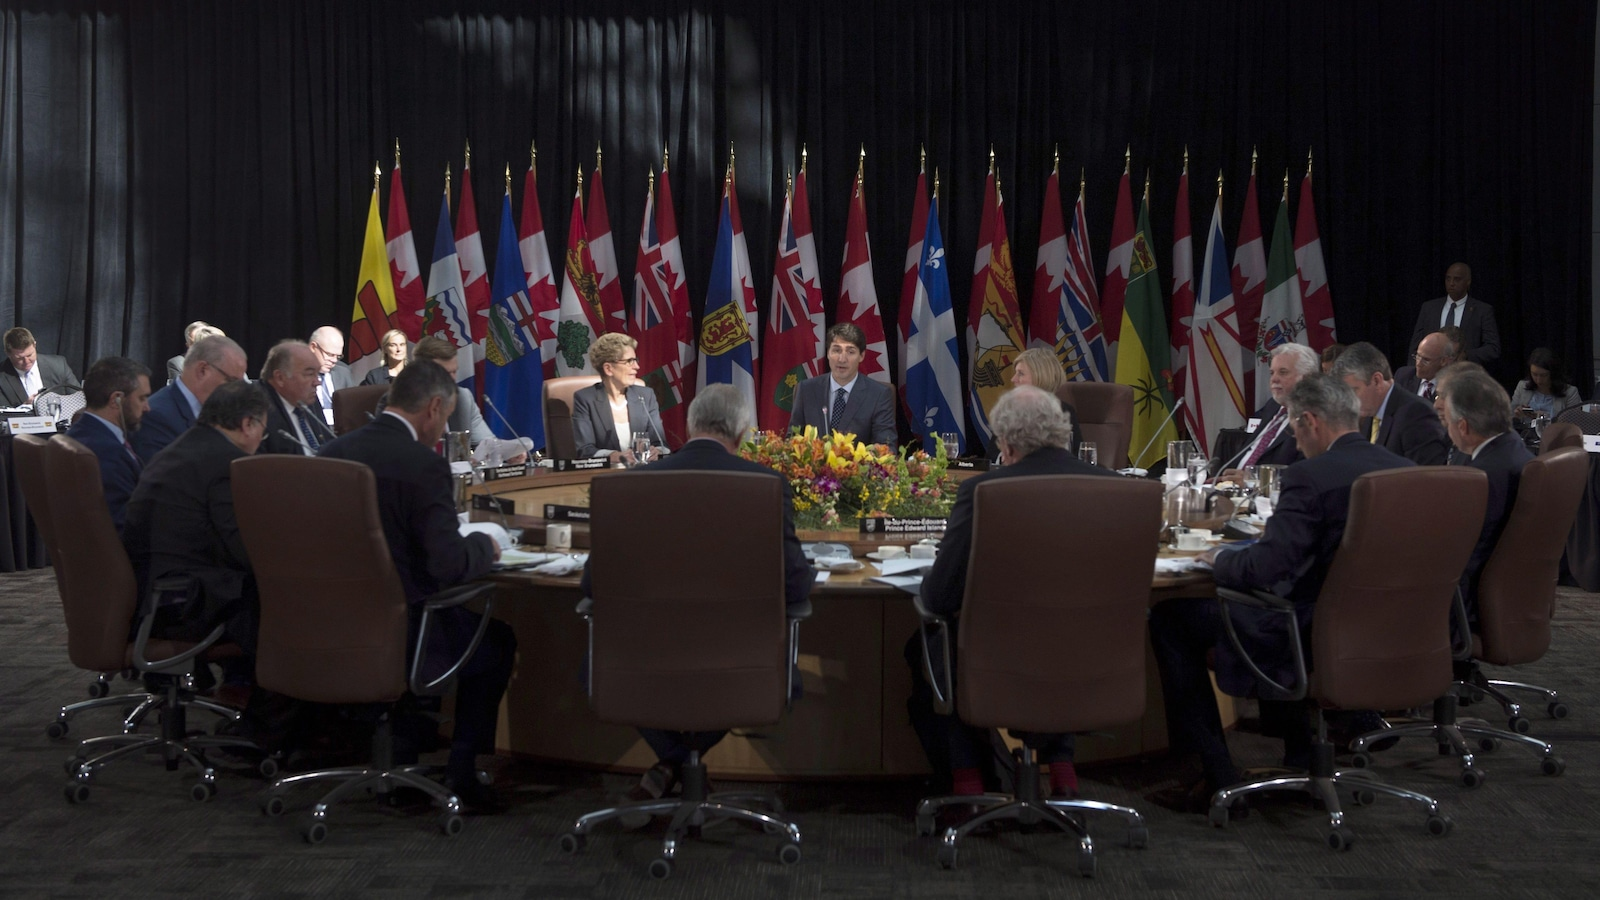 Prime Minister Justin Trudeau delivers remarks at the start of the second session at the First Ministers Meeting in Ottawa, Tuesday, October 3, 2017. THE CANADIAN PRESS/Adrian Wyld